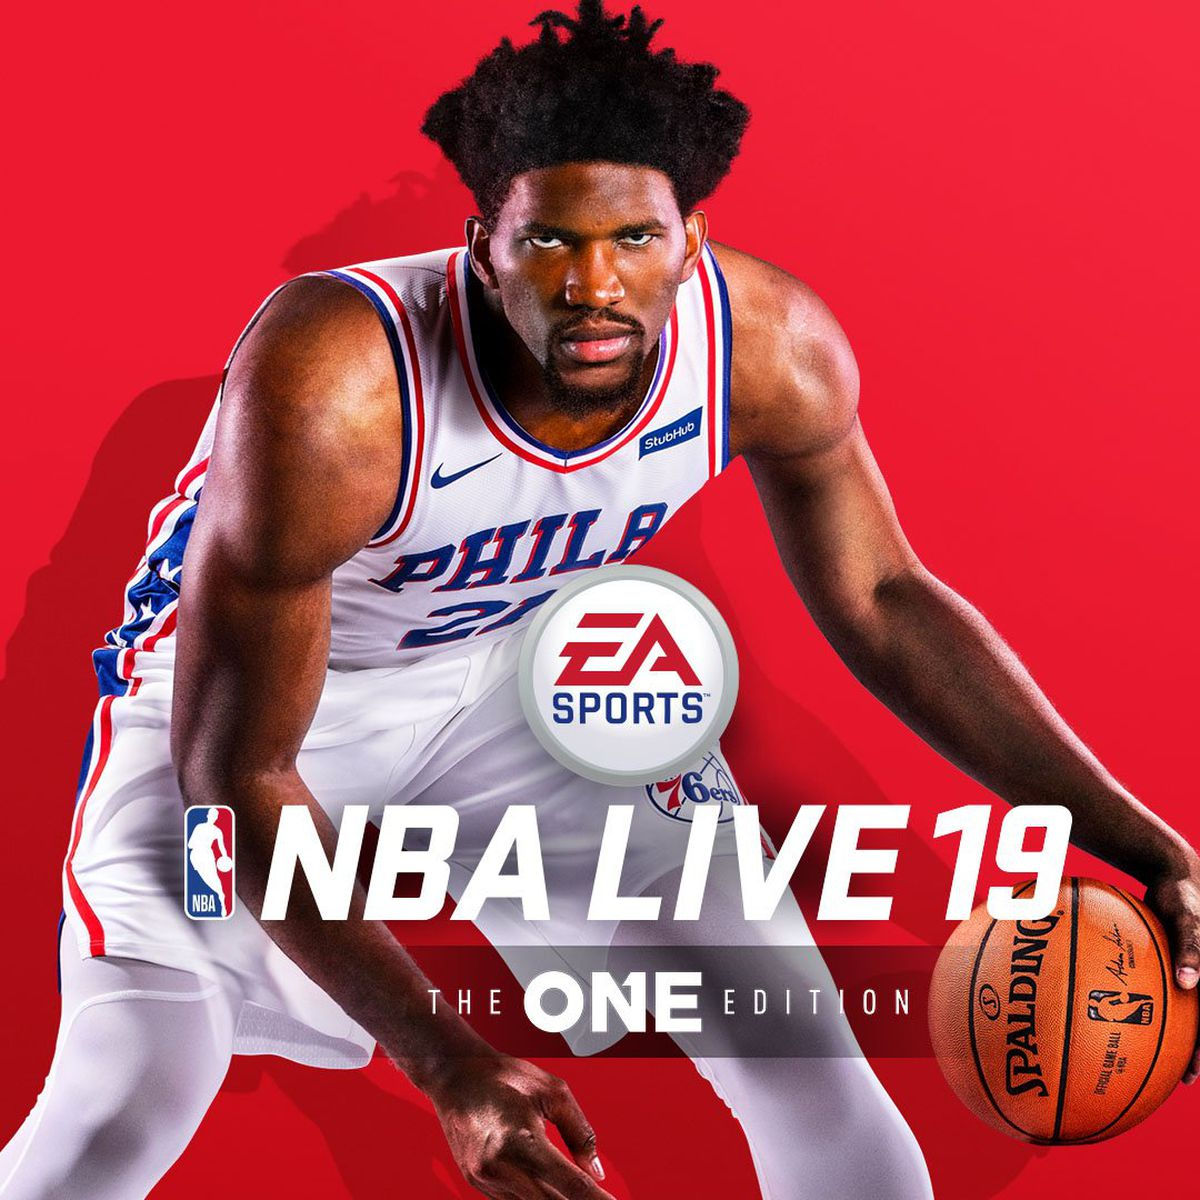 NBA Live 19 cover athlete is Sixers' Joel Embiid - Polygon